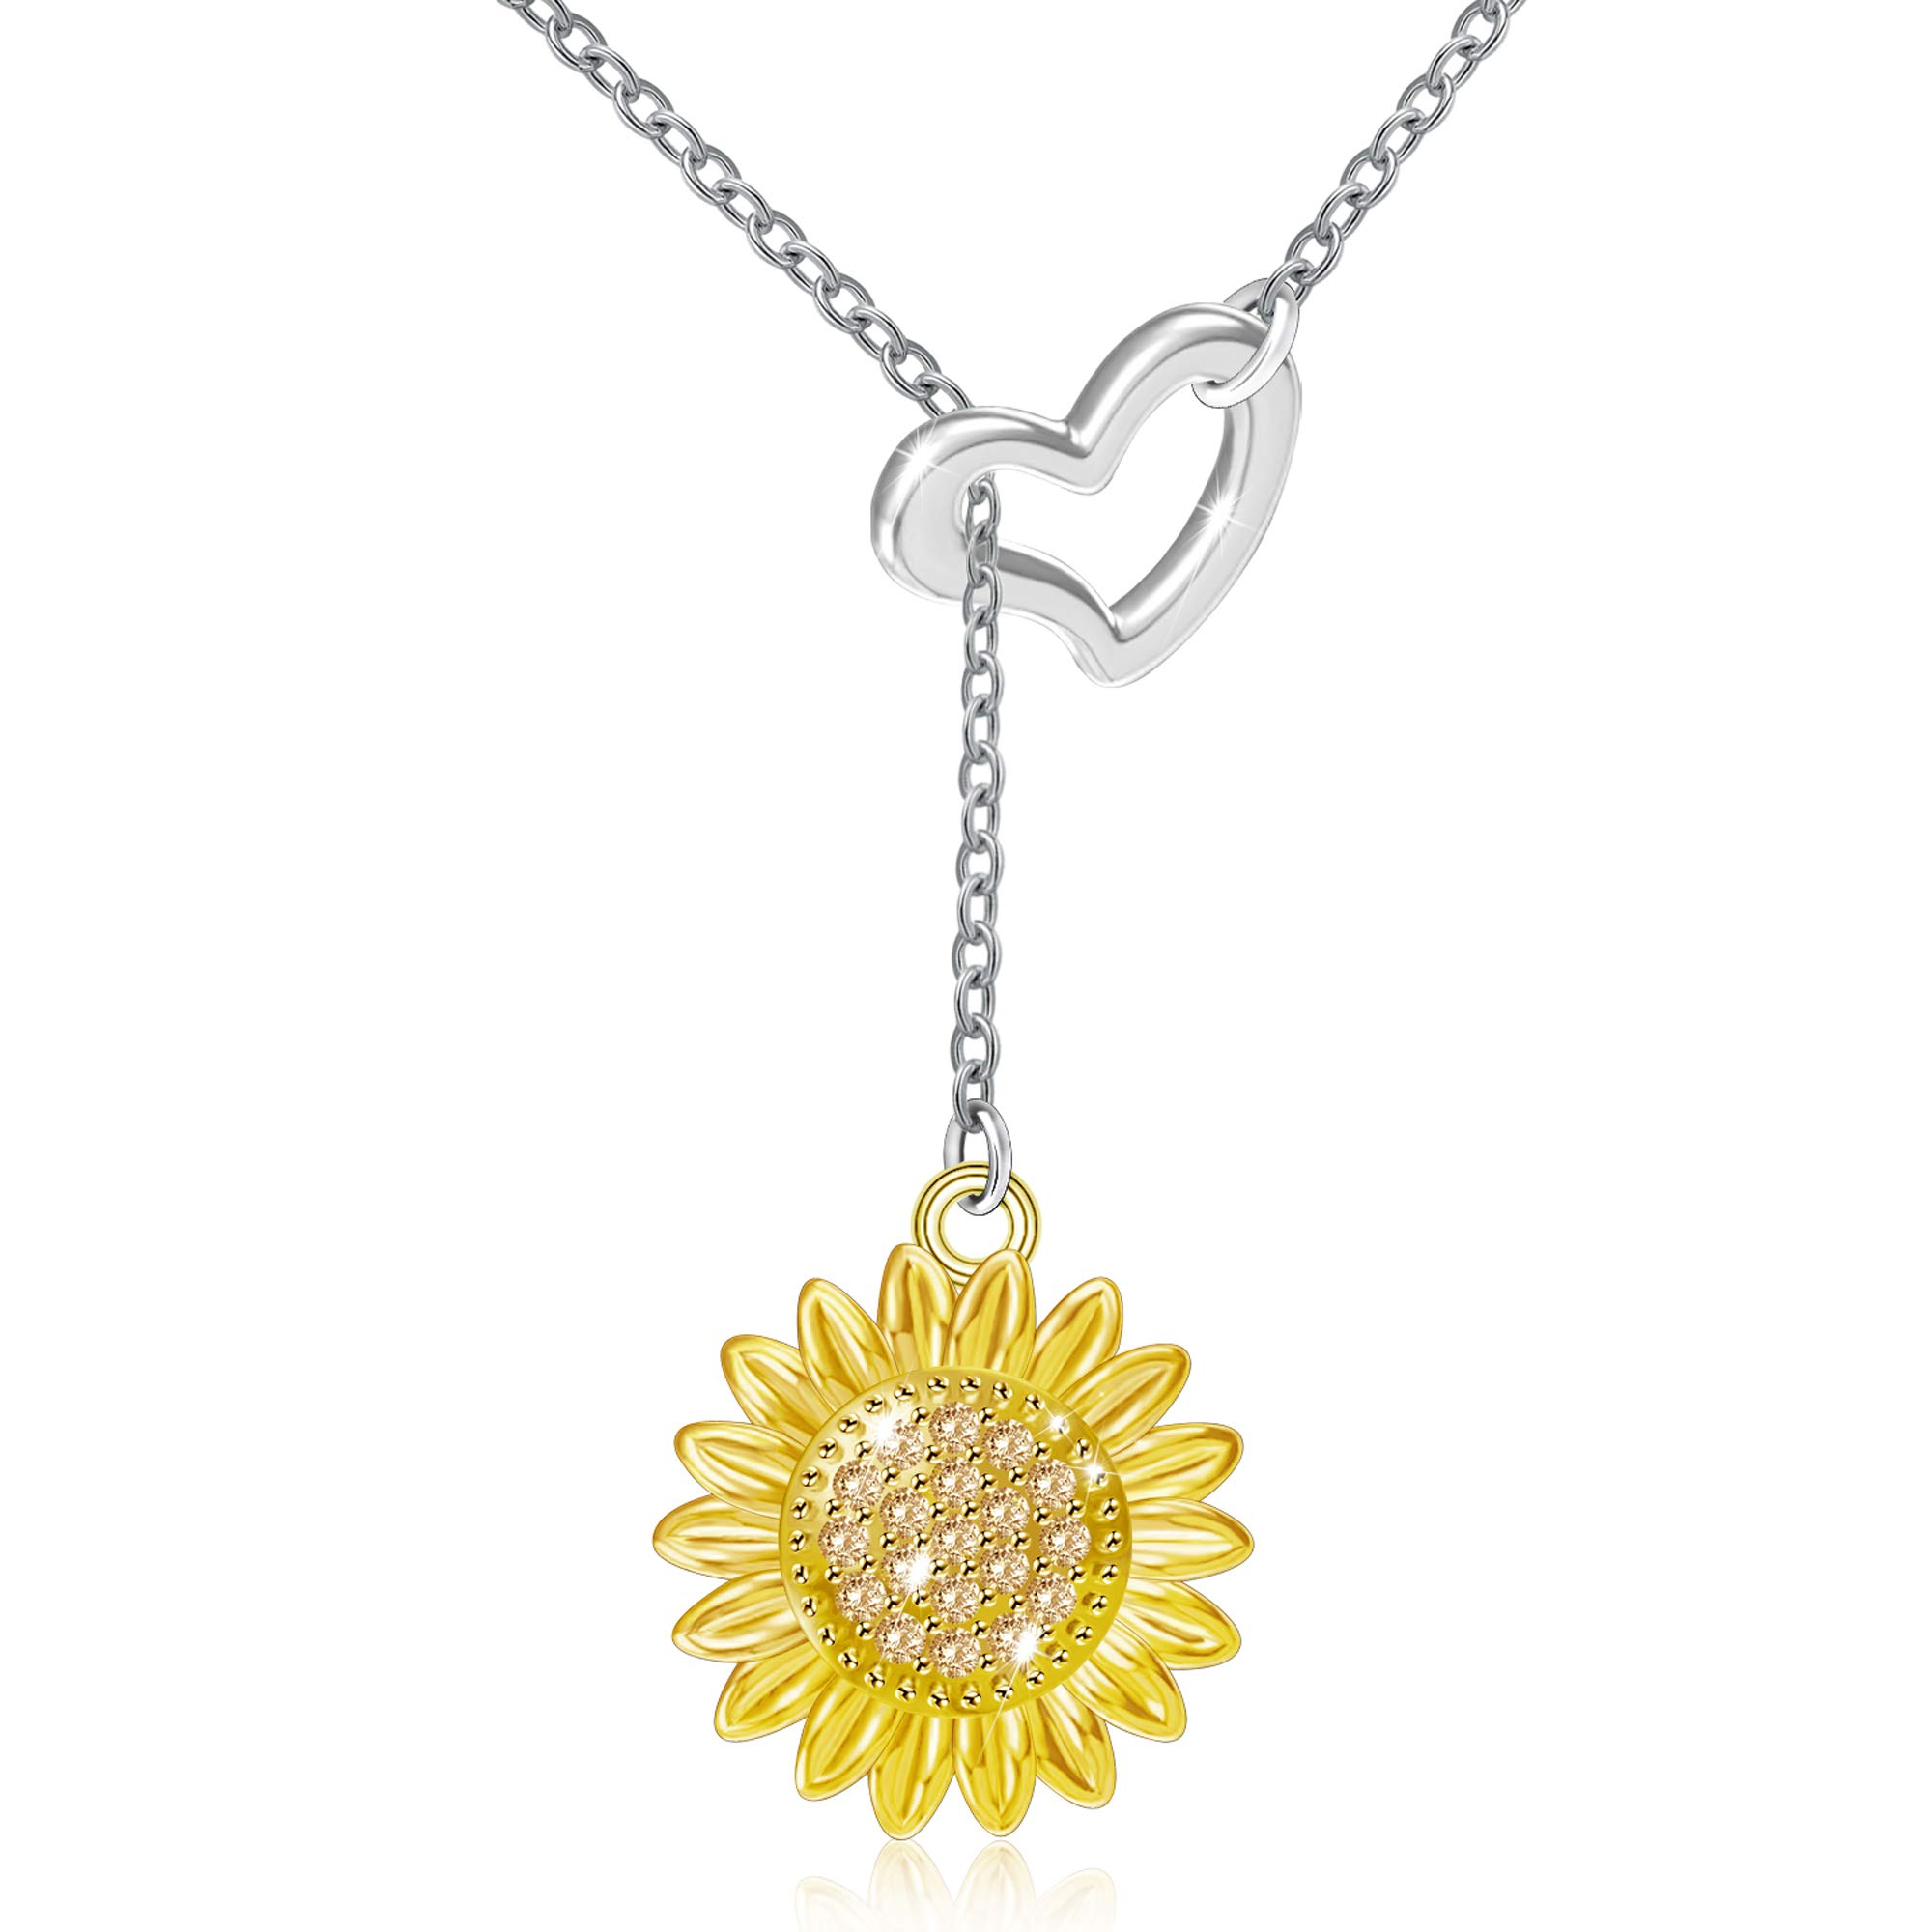 Freeco 925 Sterling Silver Sunflower with CZ Warmth Positivity Jewelry Y Pendant Necklace for Women Girls